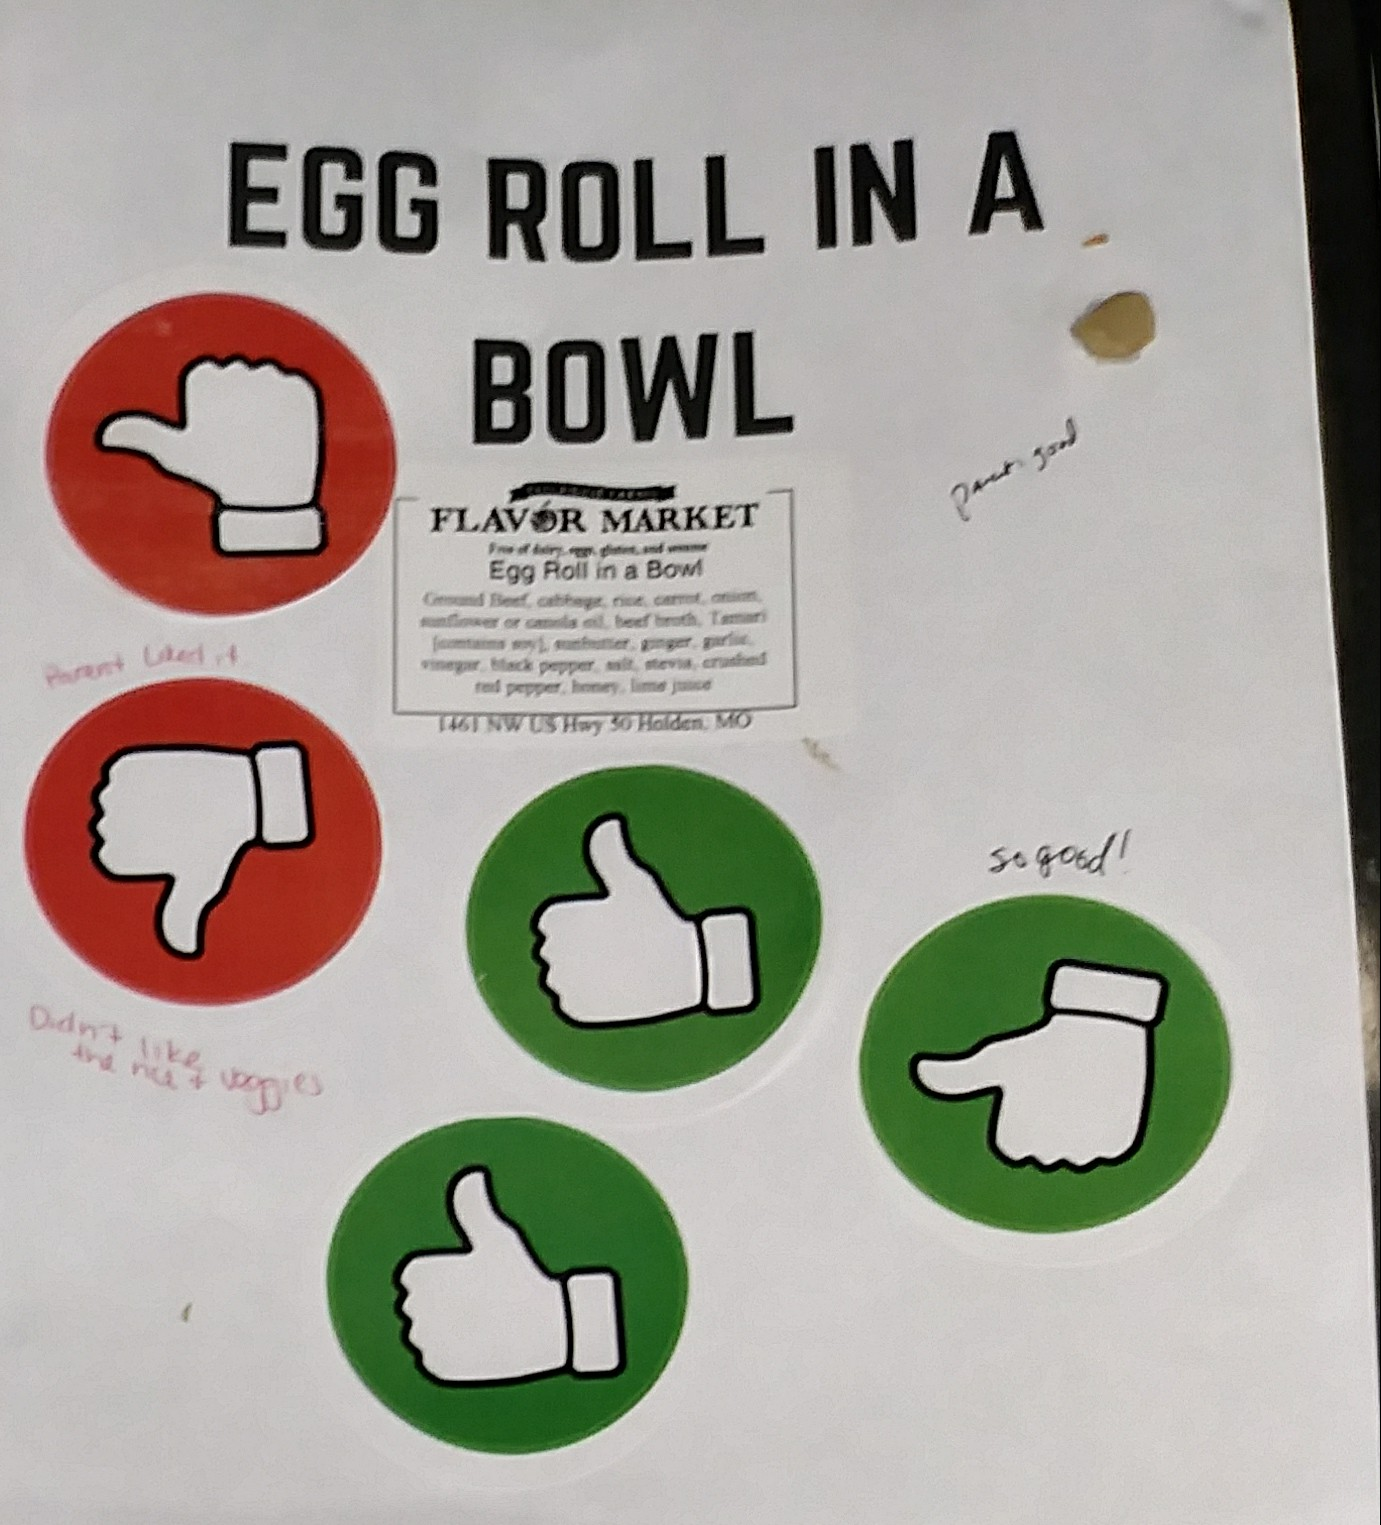 6student eval of egg roll